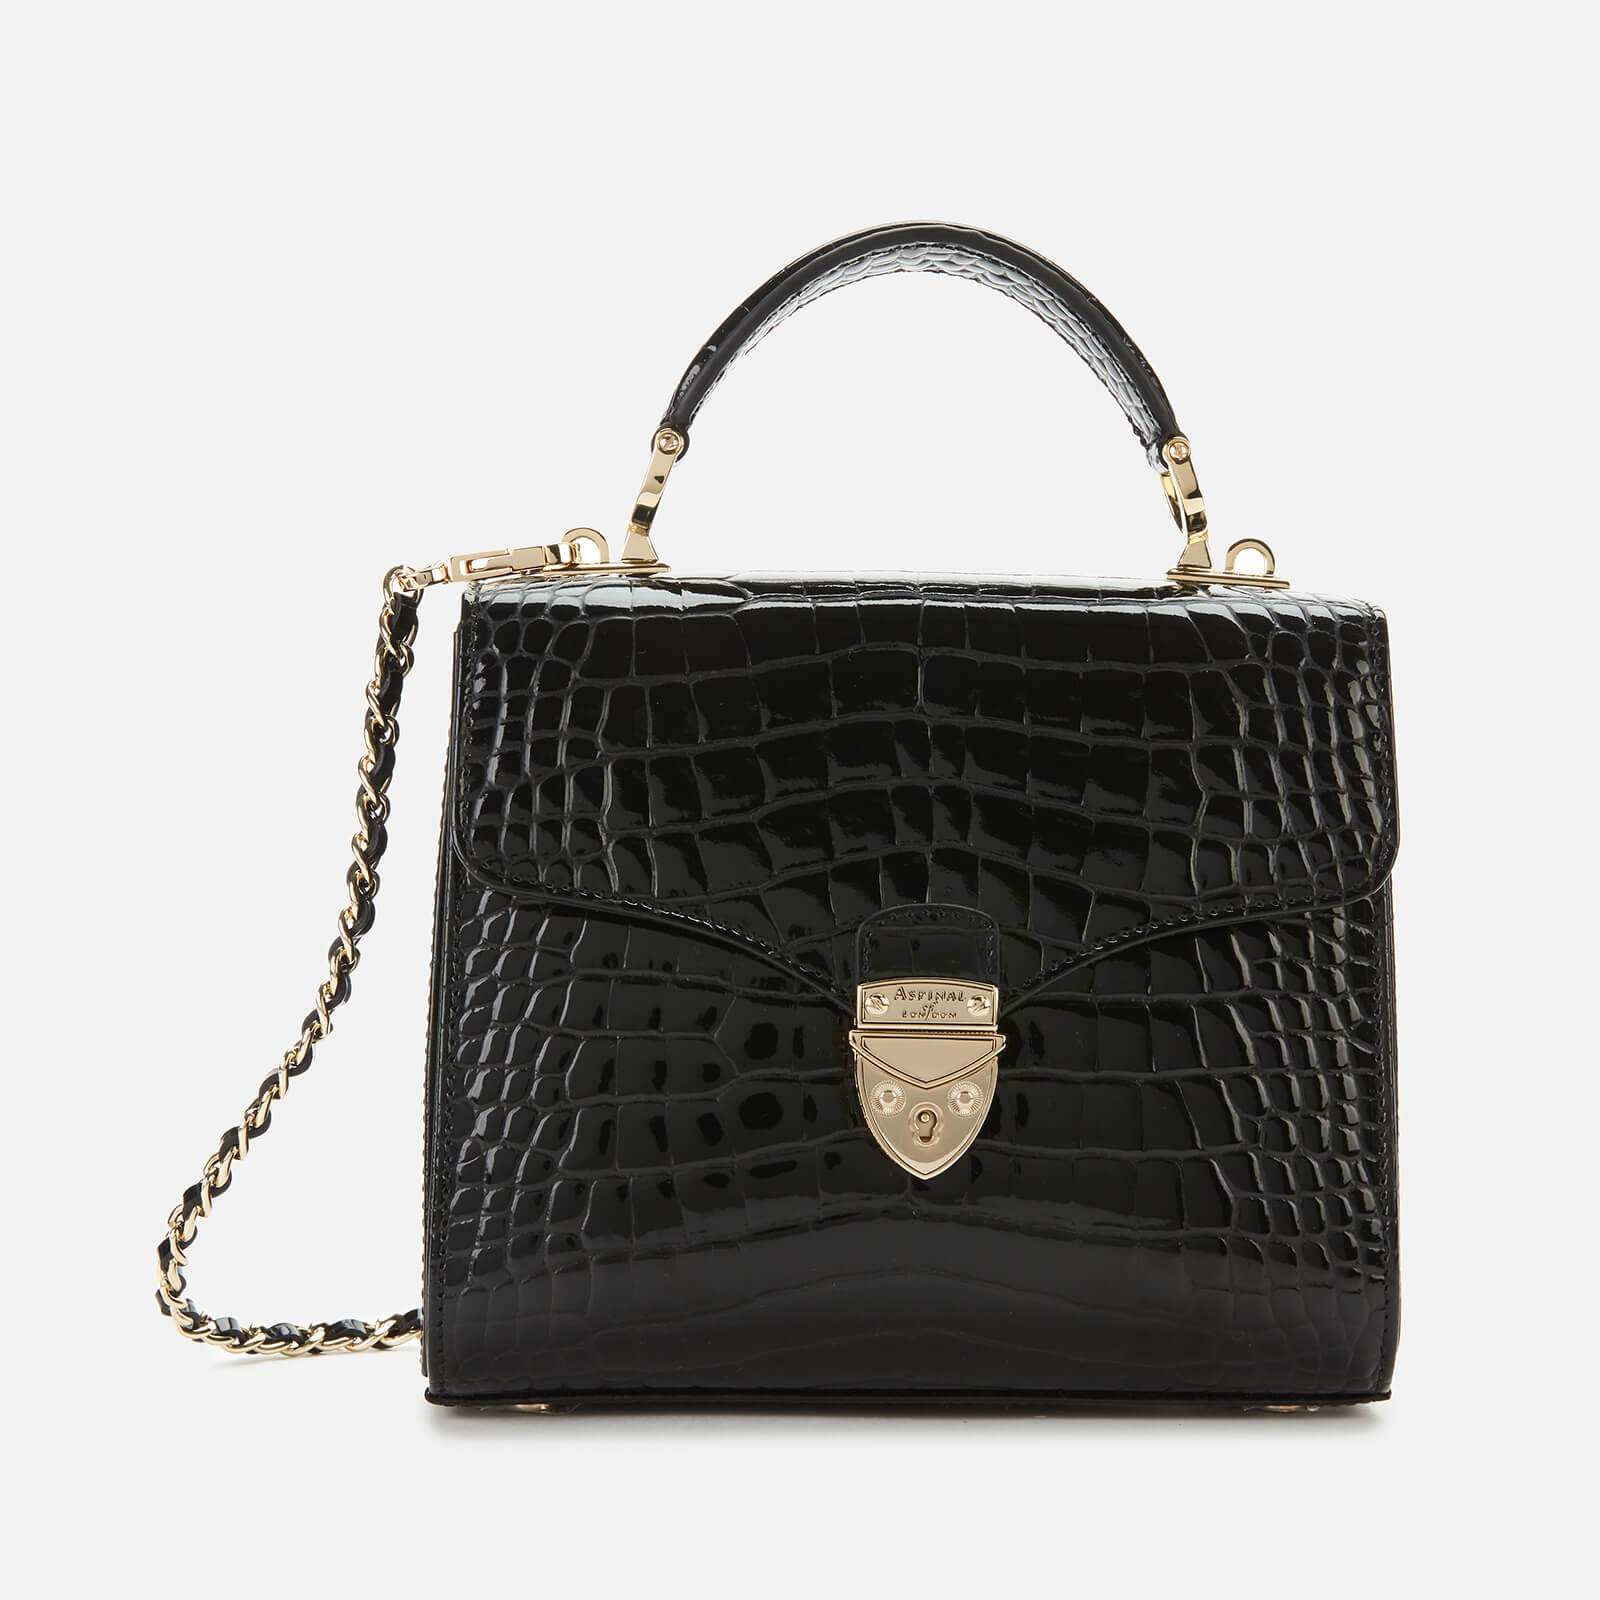 Aspinal of London Women's Mayfair Midi Bag - Black